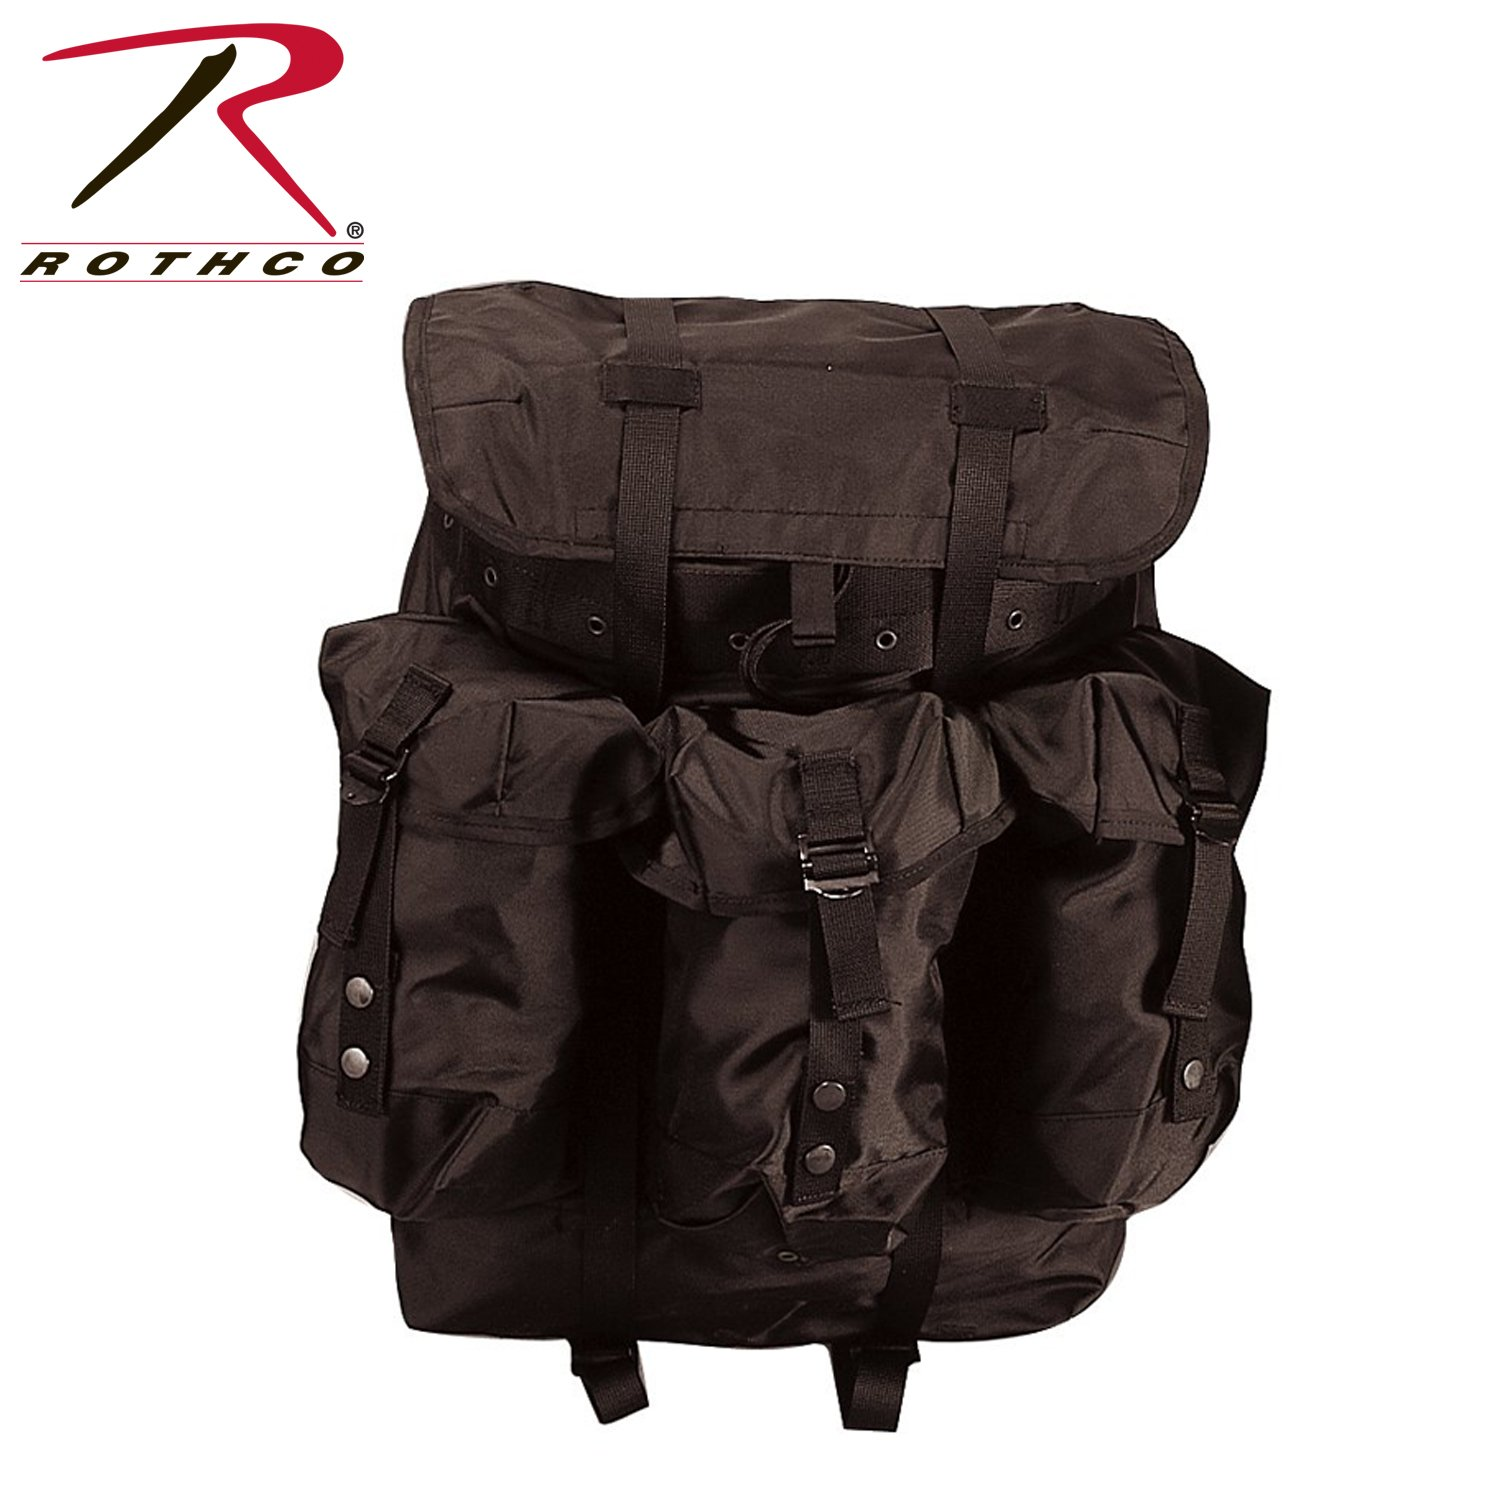 Rothco Plus Large Alice Pack with Frame, Black